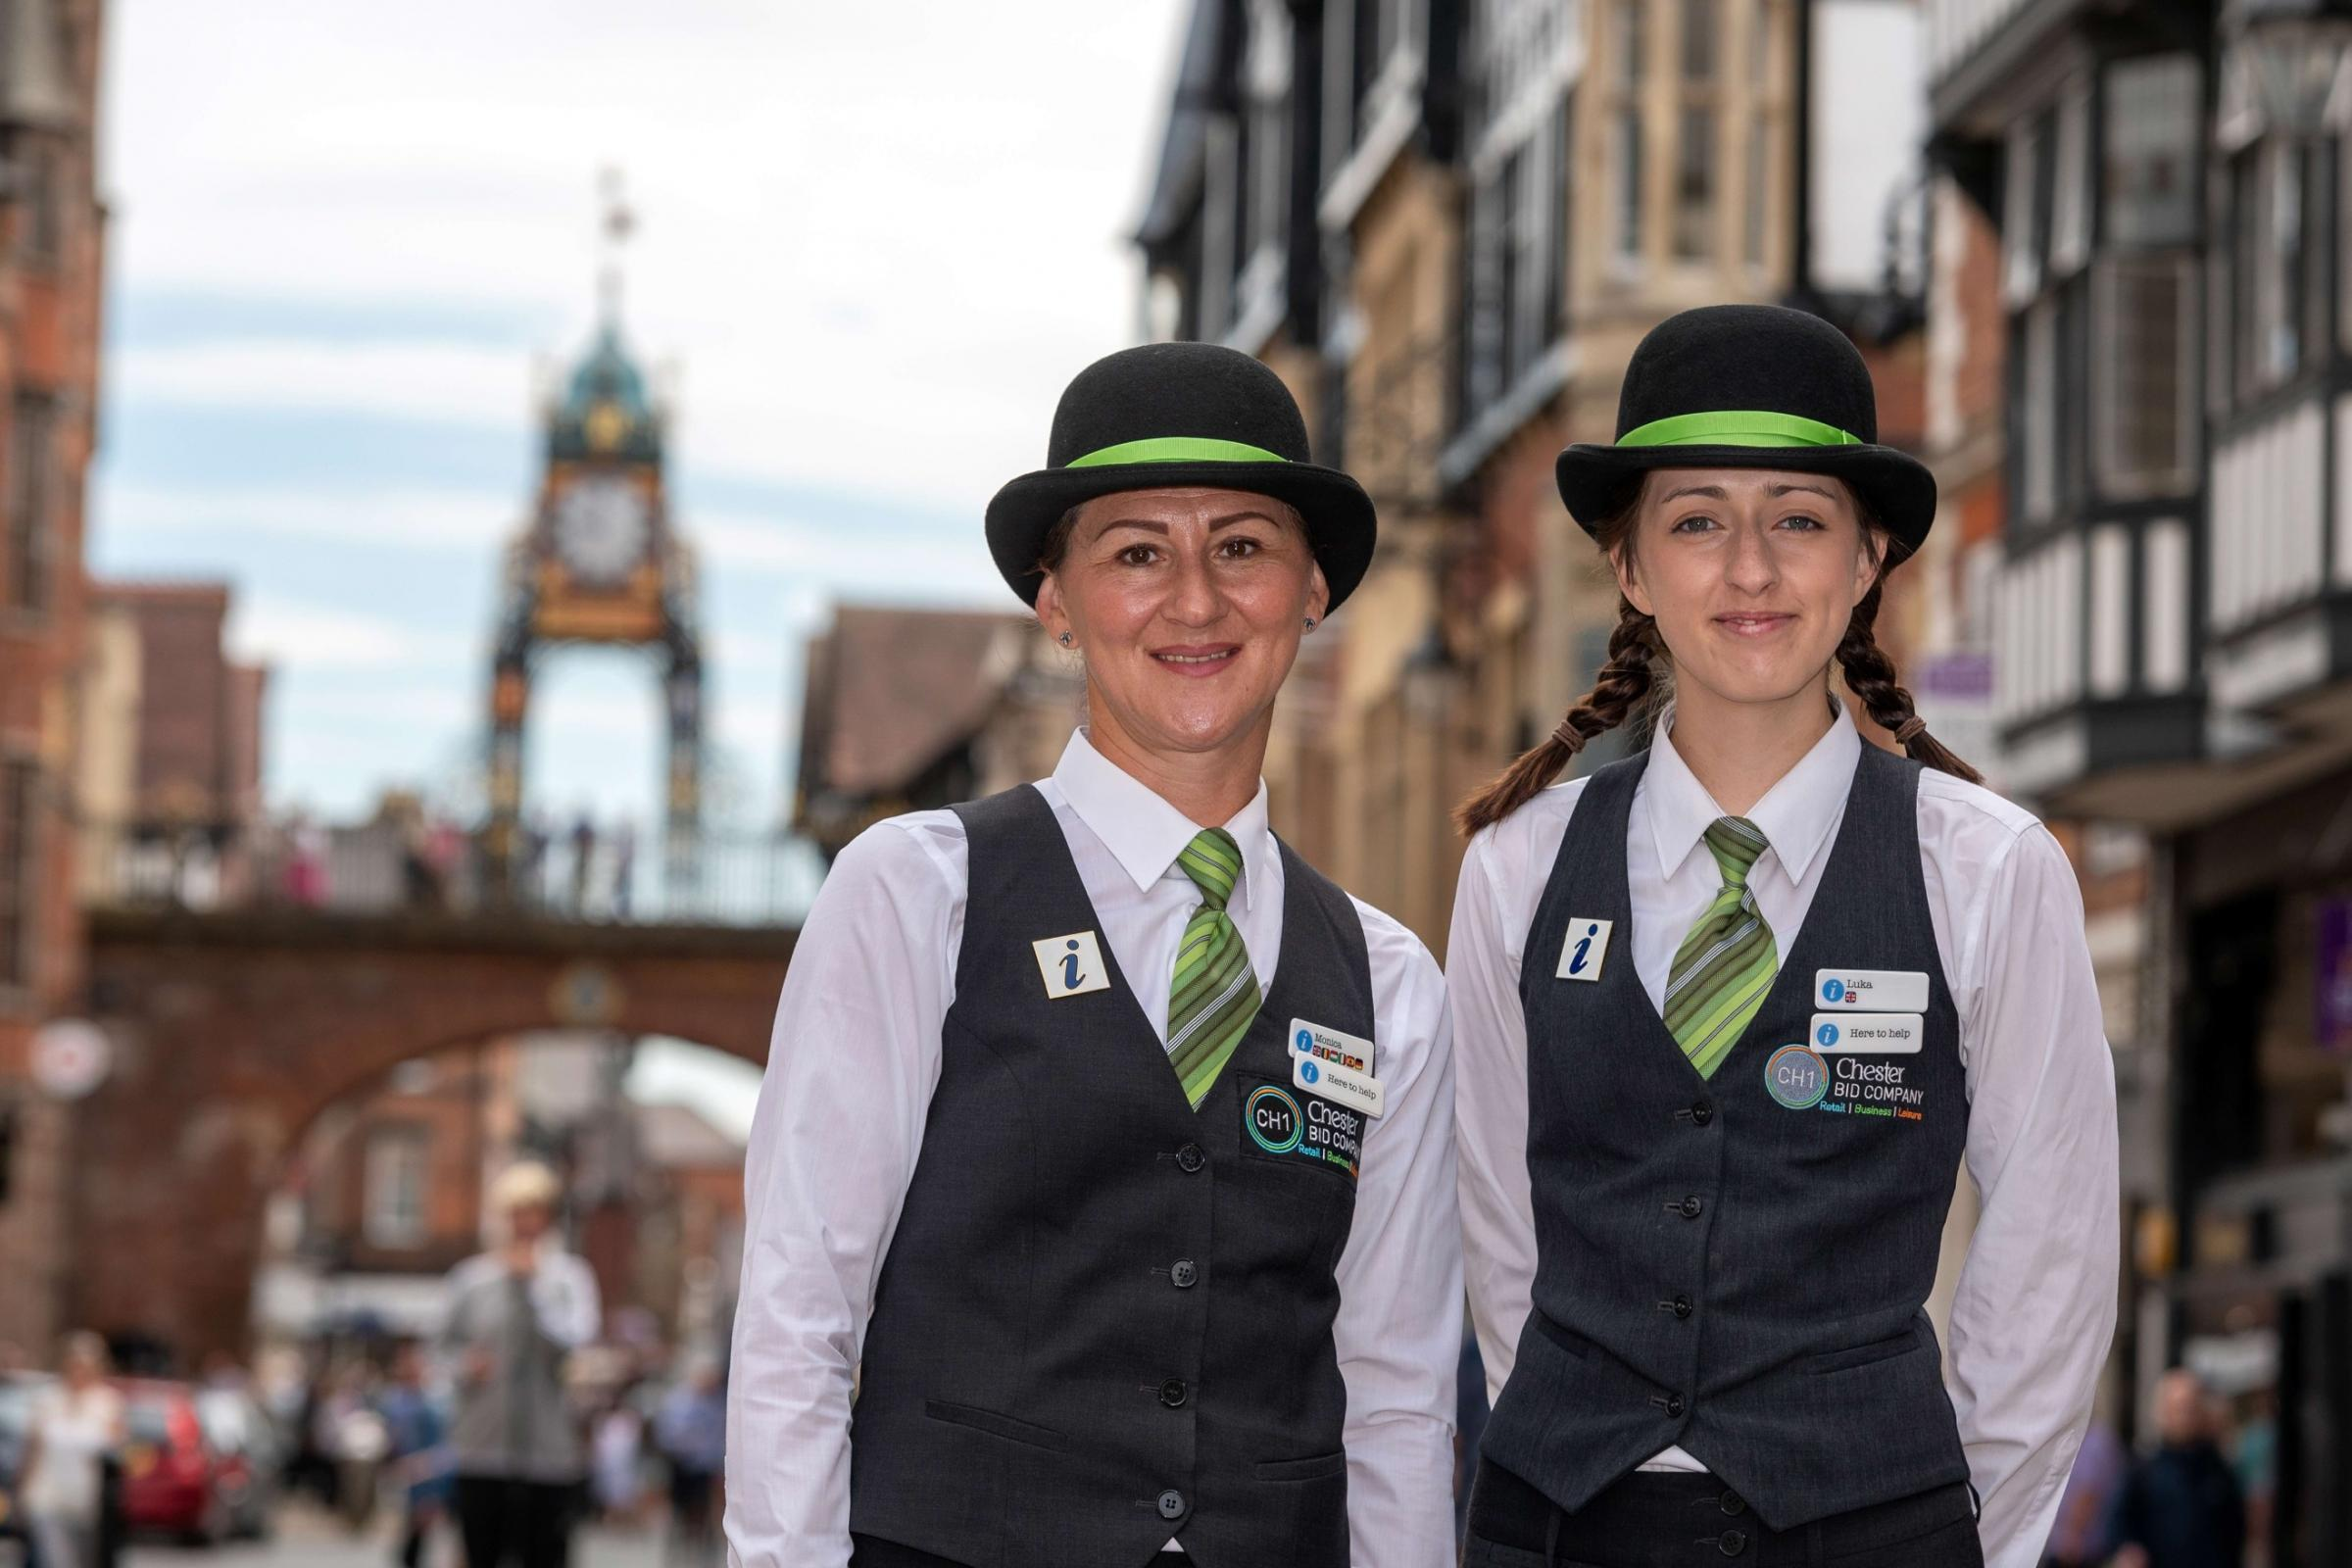 Monica Roman and Luka Jake Morrell, CH1ChesterBID's Welcome Ambassadors are celebrating welcoming 100,000 visitors to Chester.